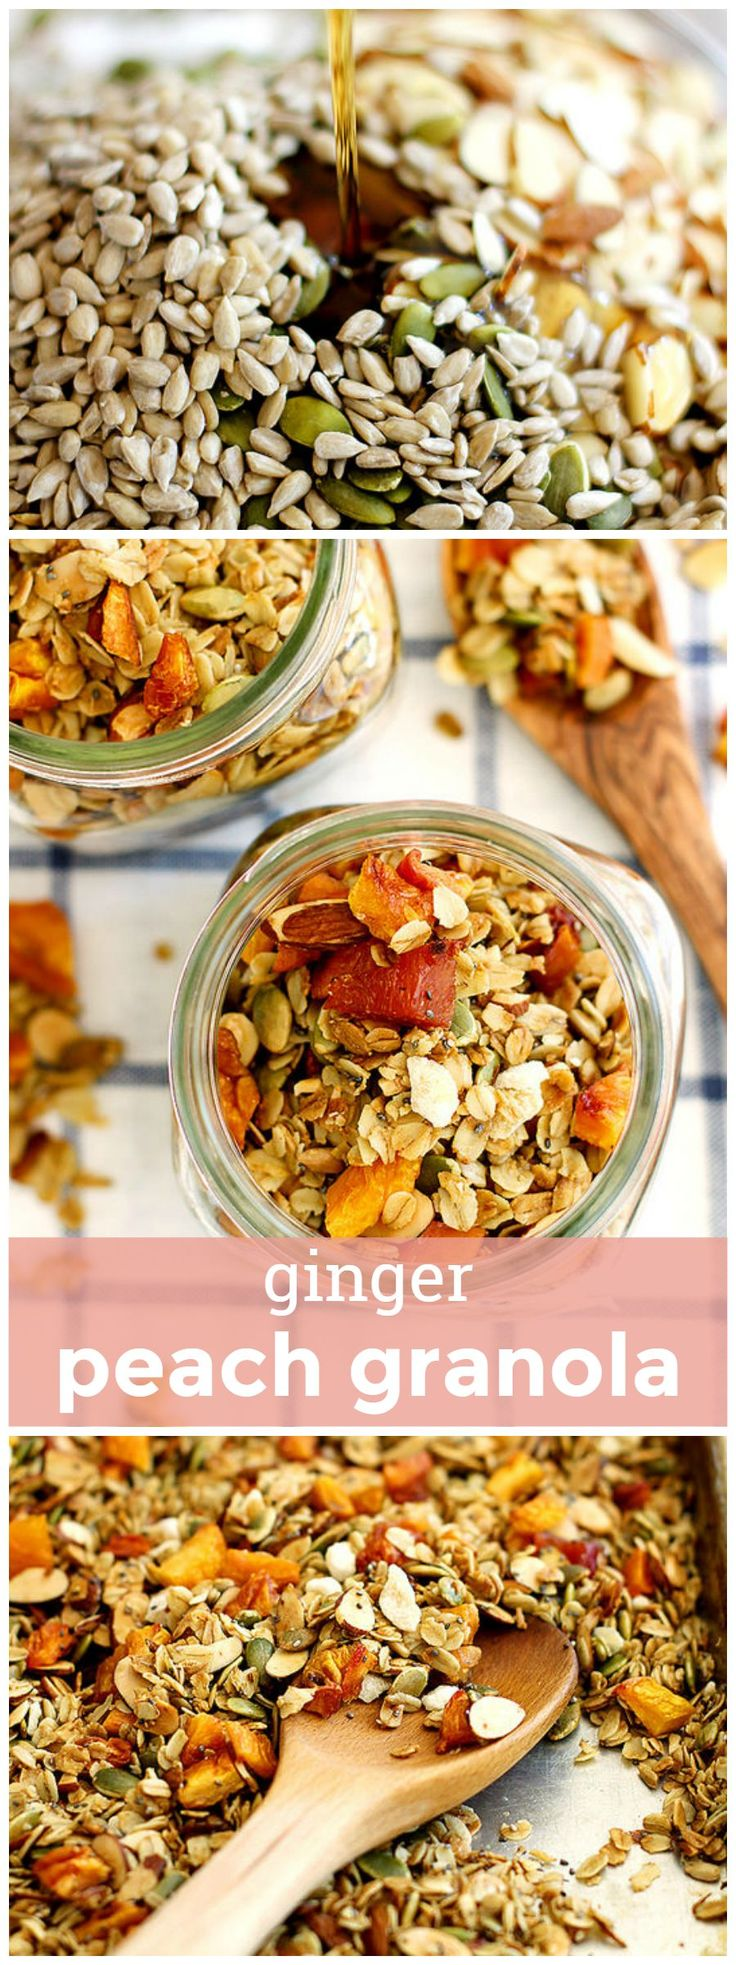 Ginger Peach Granola -- Crunchy maple-baked homemade granola flavored with sweet dried peaches and crystallized ginger. girlversusdough.com @girlversusdough